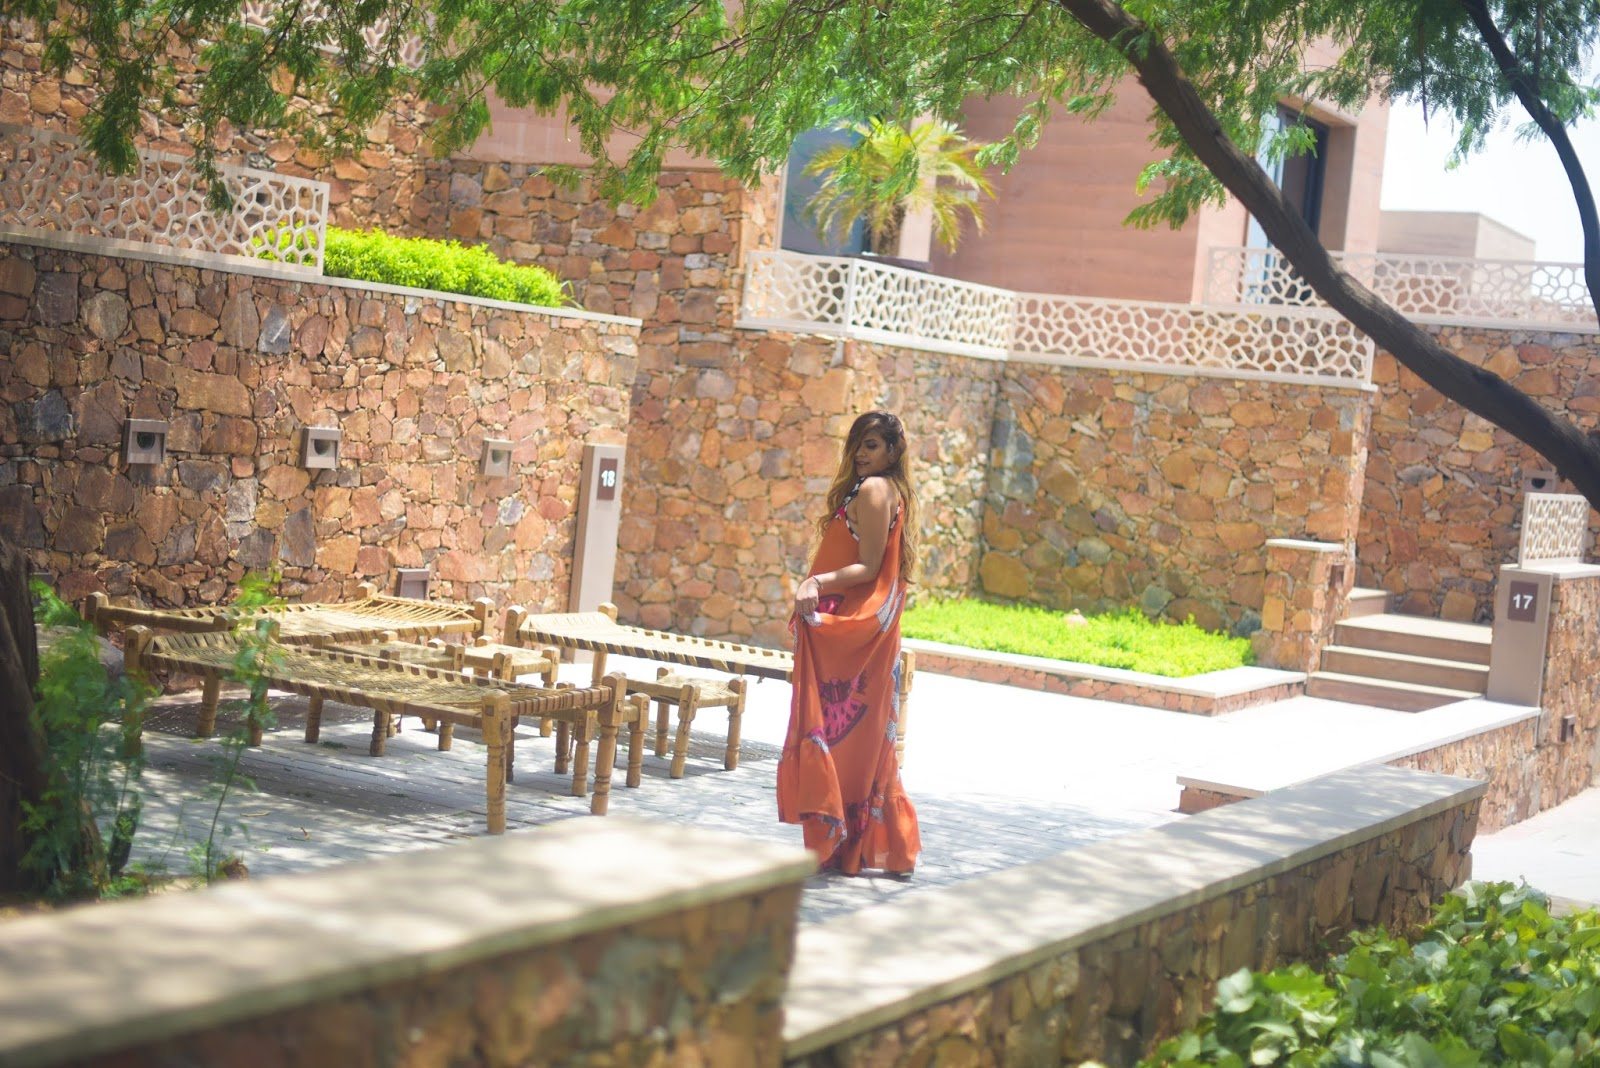 The Lalit Mangar Staycation